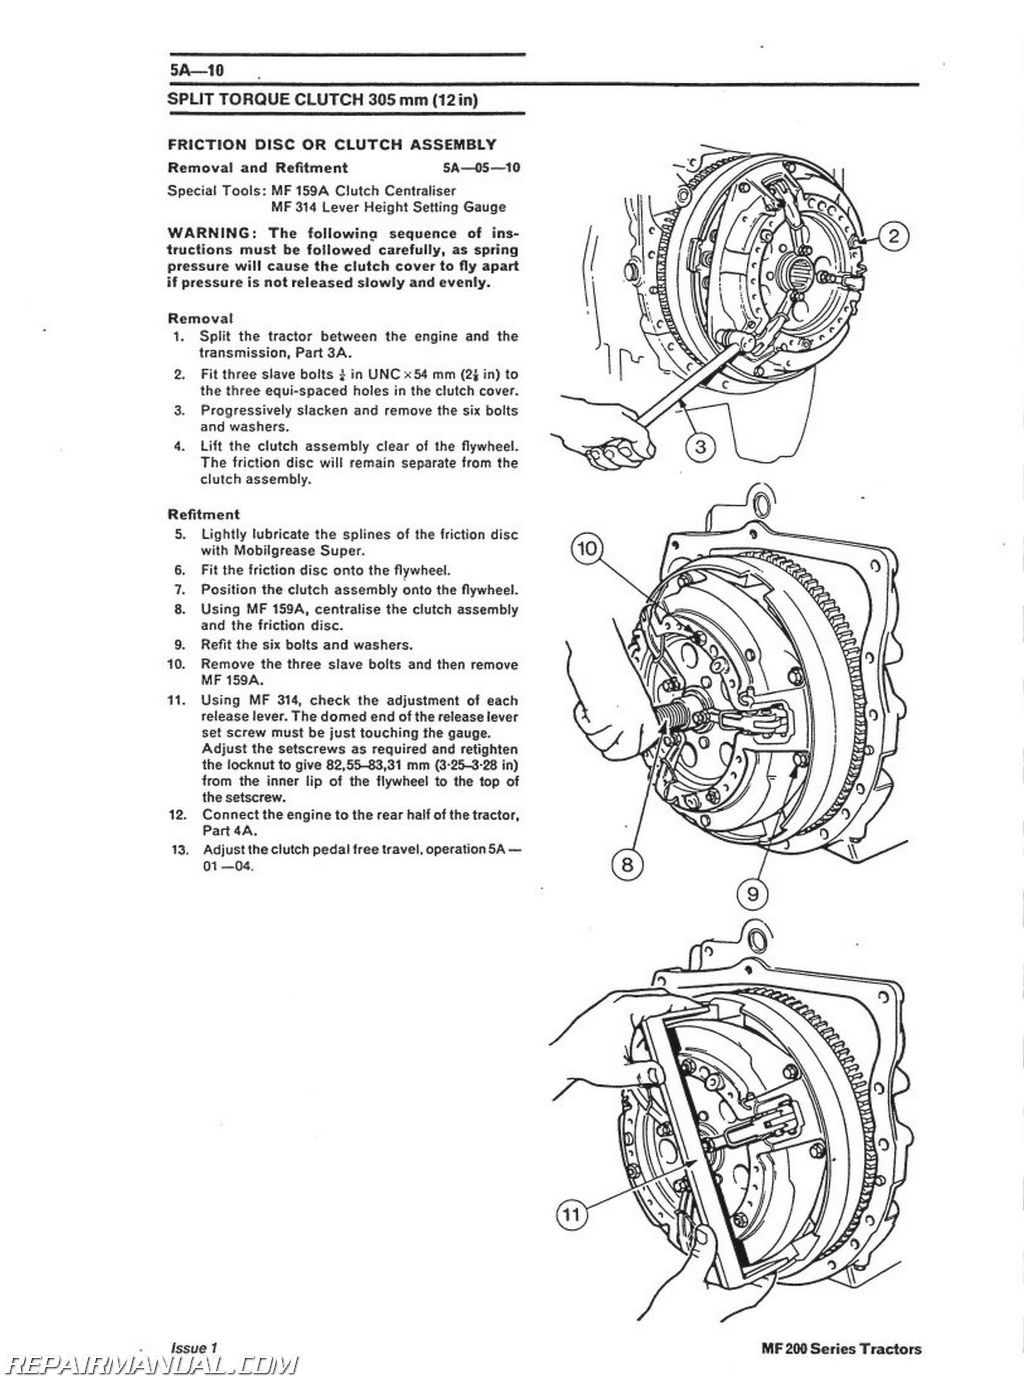 wiring diagram for massey ferguson 240  u2013 the wiring